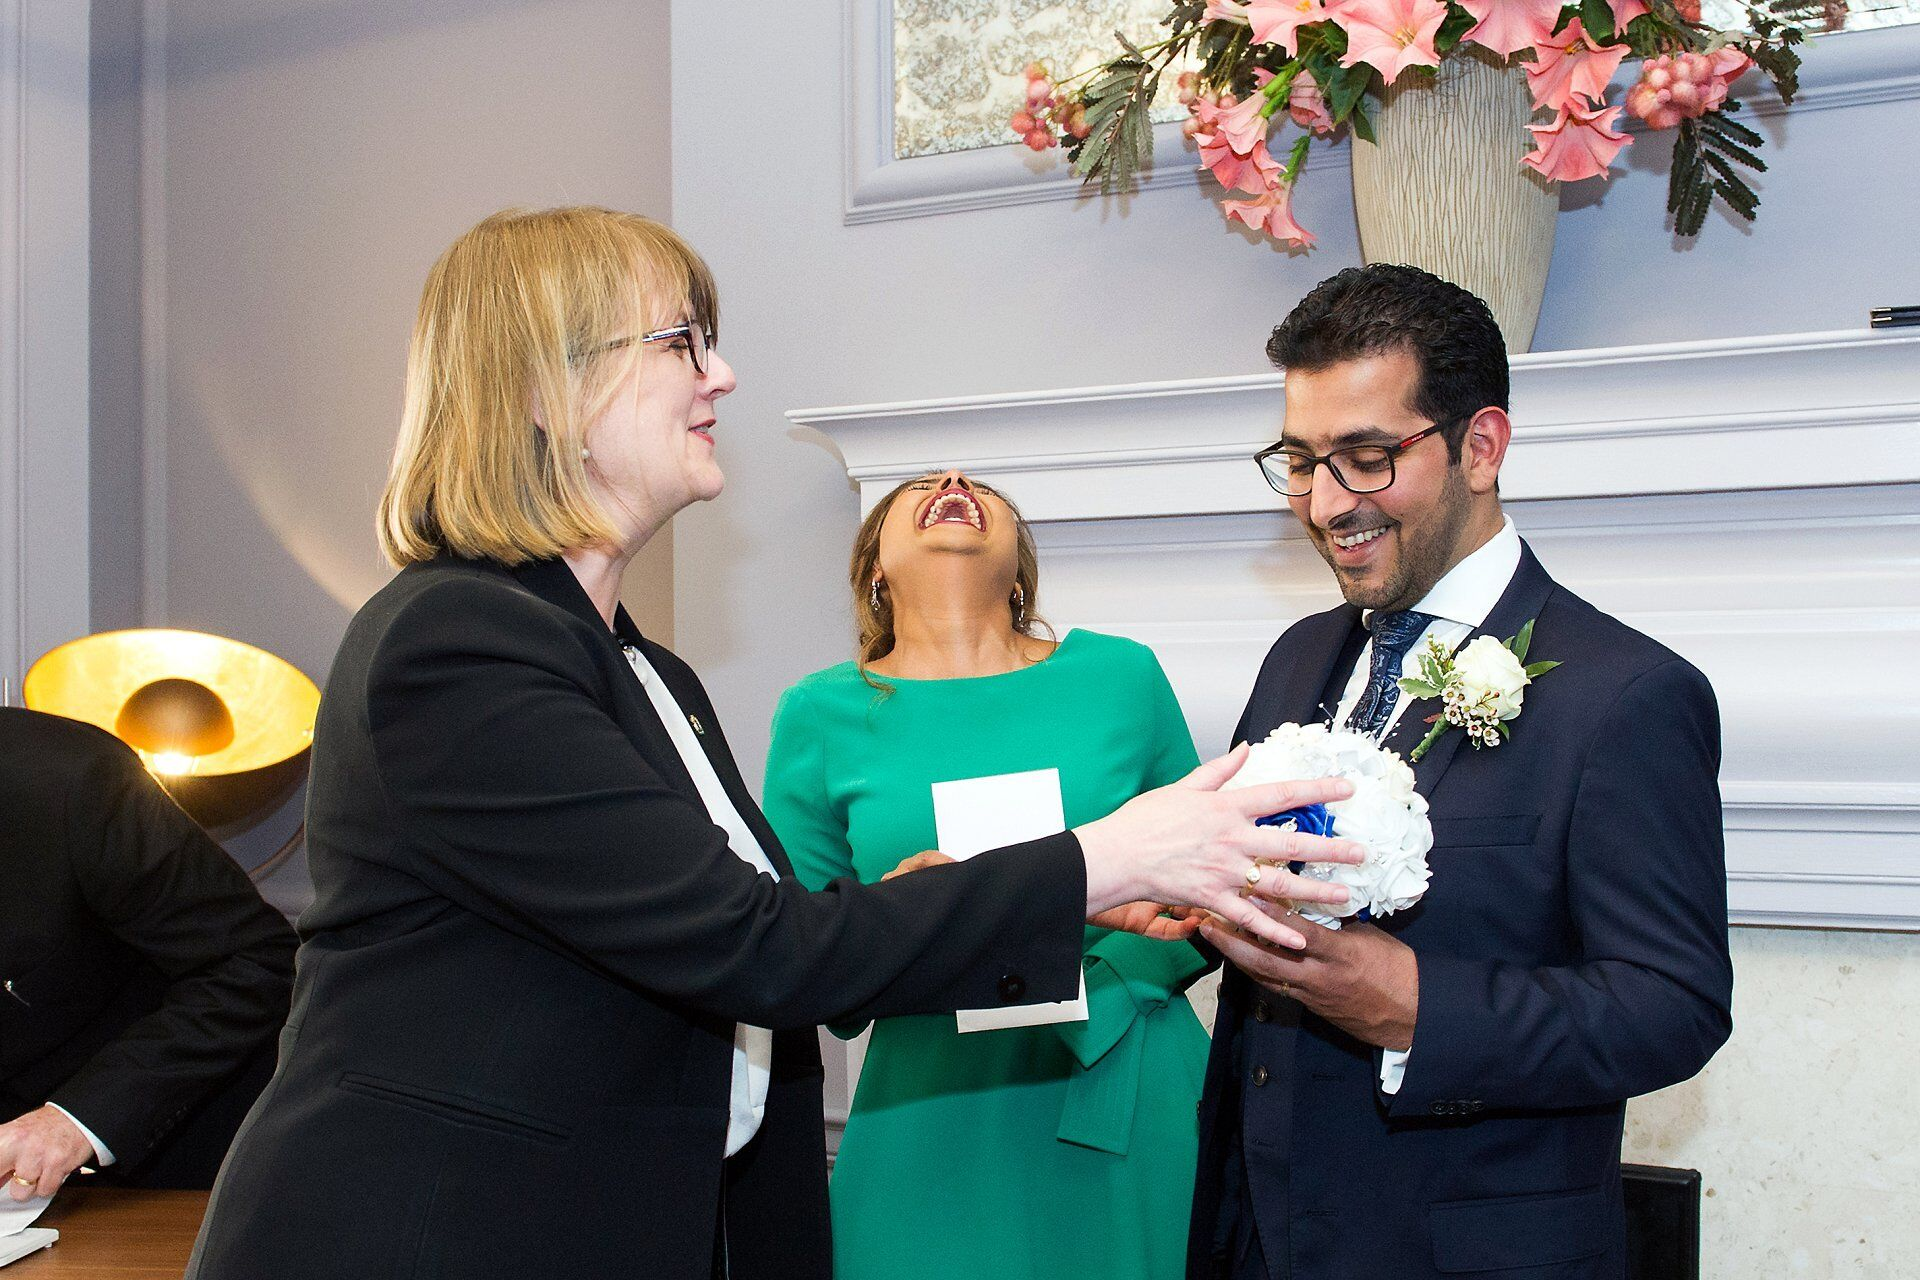 emma duggan photography at old marylebone town hall capturing love laughter and fun during this knightsbridge ceremony